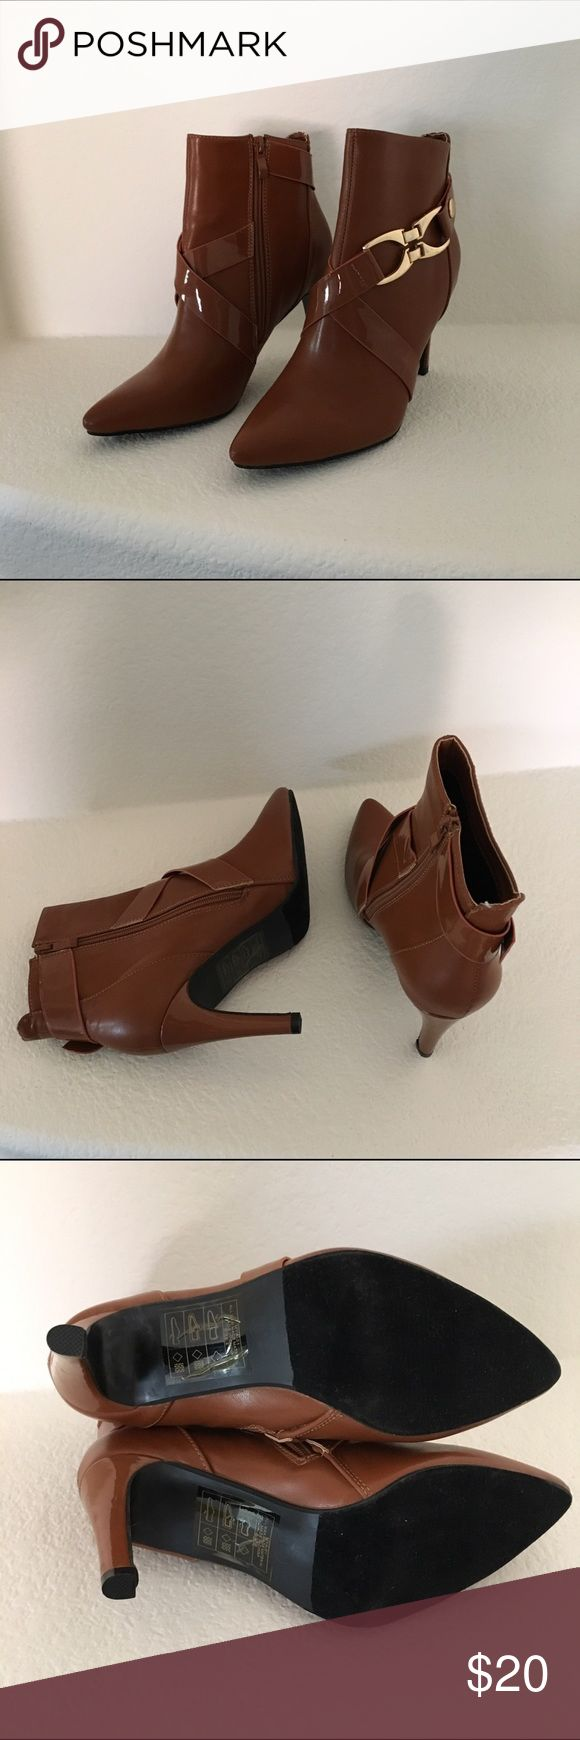 """NWT caramel color ankle boots Brand new caramel color boots by Heart's Collection. Approx 3.5"""" heel. Side zipper. Faux leather. Does not come with box. Slight scratches on metallic buckle (see last photo). Shoes Ankle Boots & Booties"""